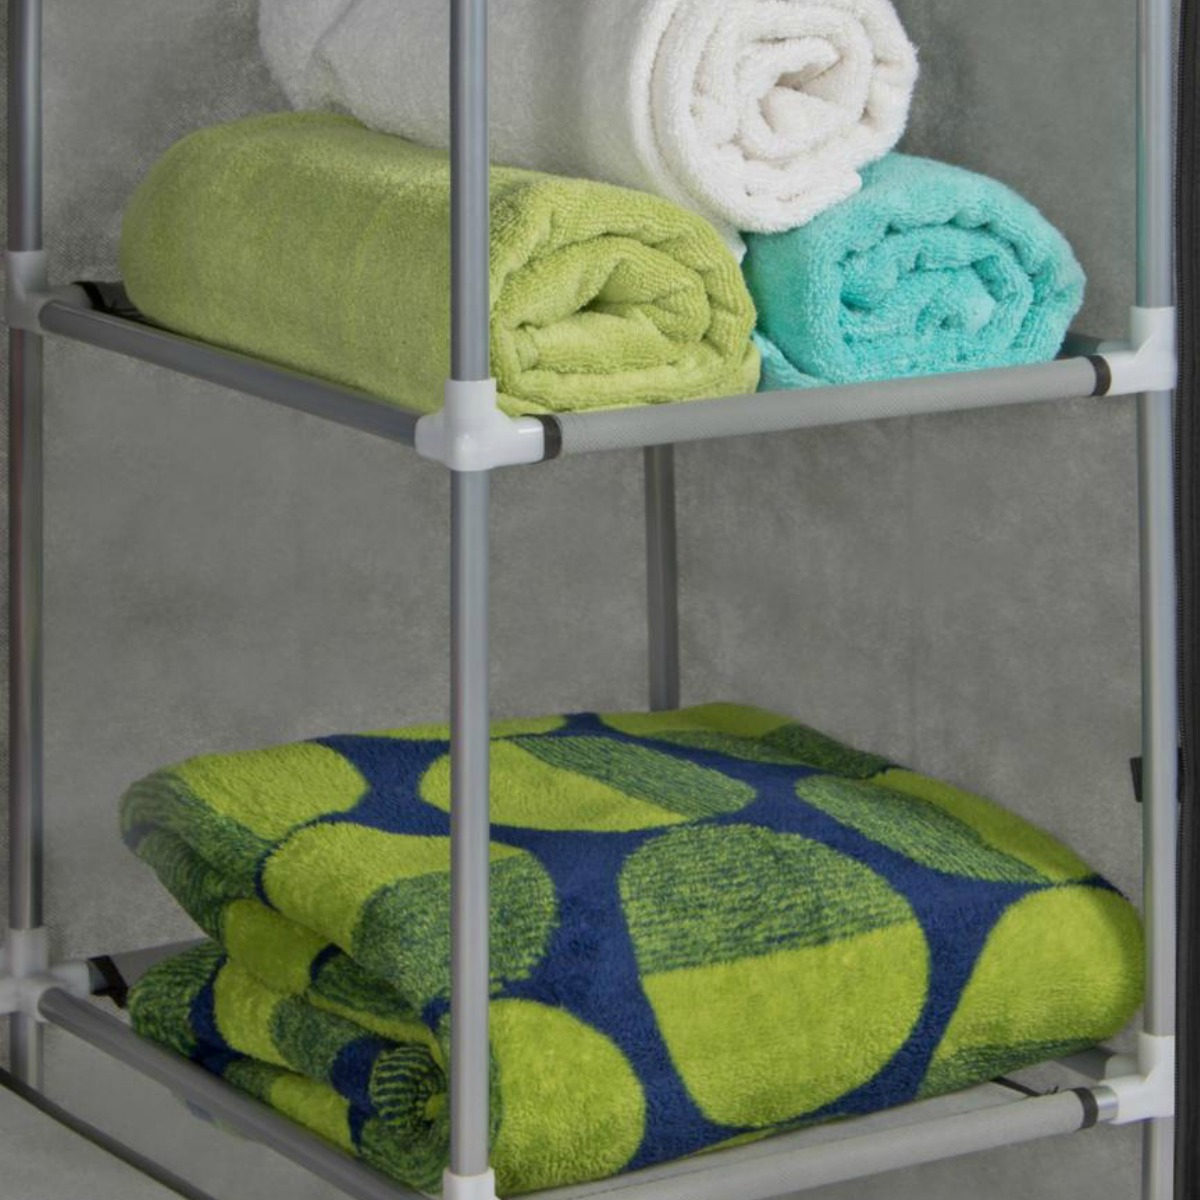 inside of best choice products closet with towels stacked